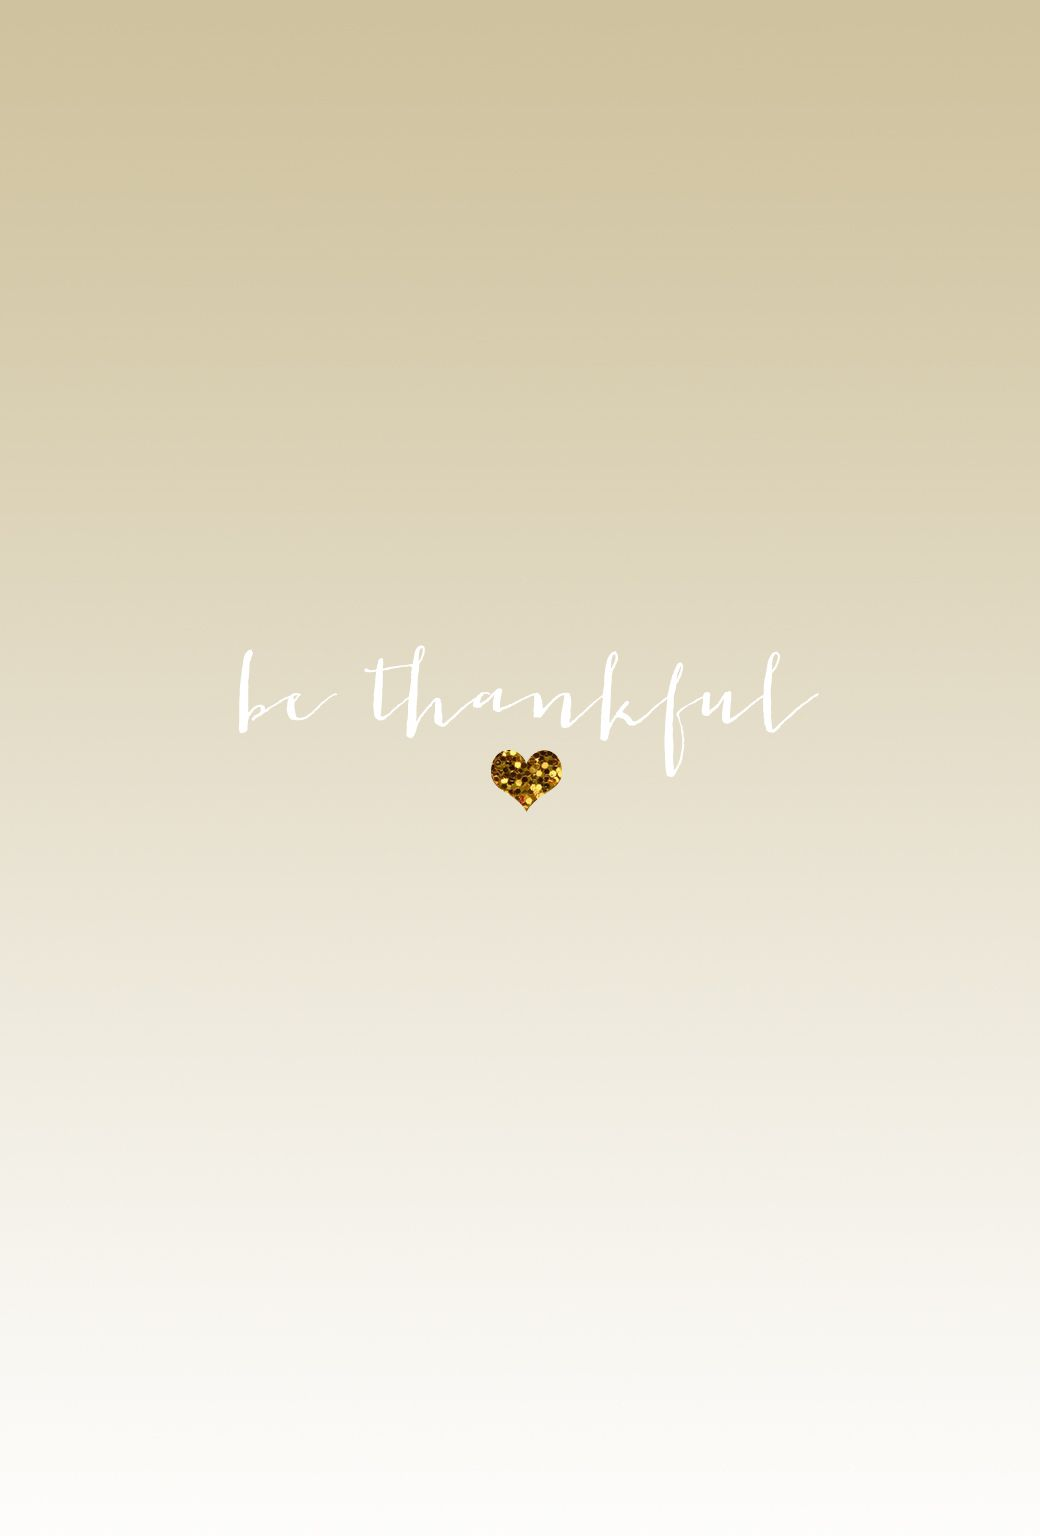 Quote Gld Thankful Quote Iphone Wallpaper Panpins  Iphone Wallpapers